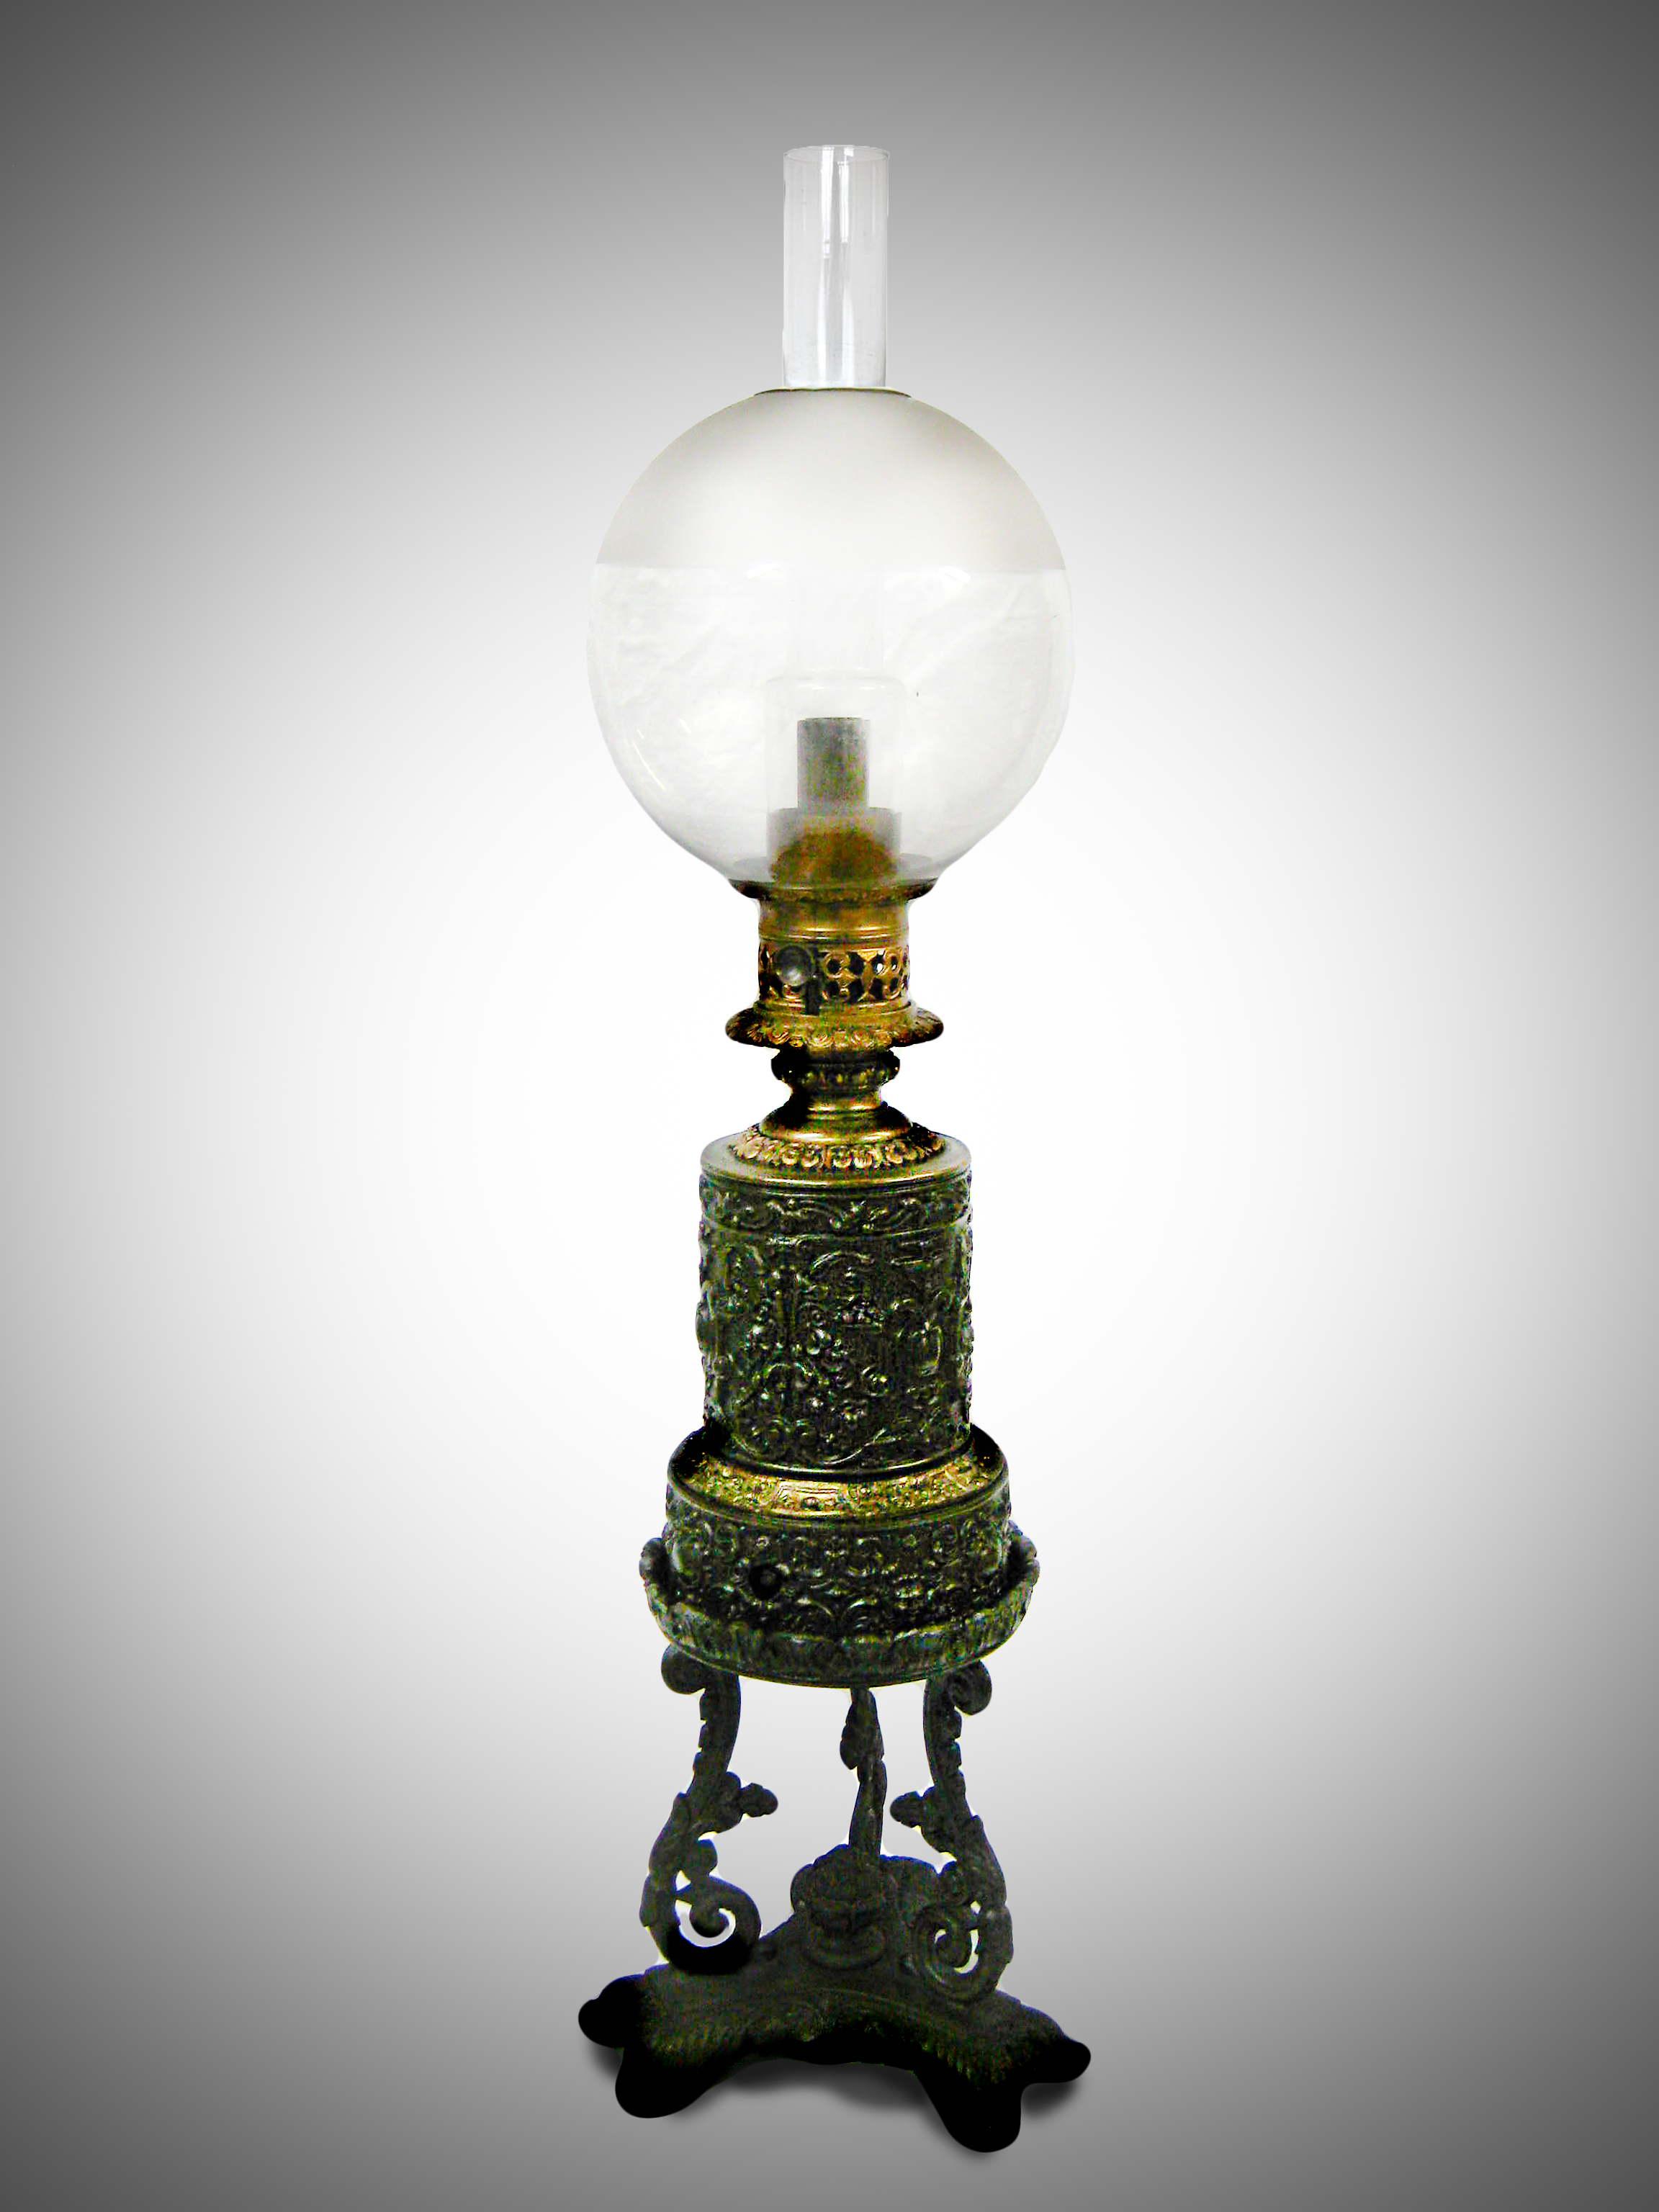 This Is A Carcel French Mineral Oil Lamp. Circa 1820. The Carcel Lamp Was  Invented By The French Watchmaker Bernard Guillaume Carcel (1750 1818).